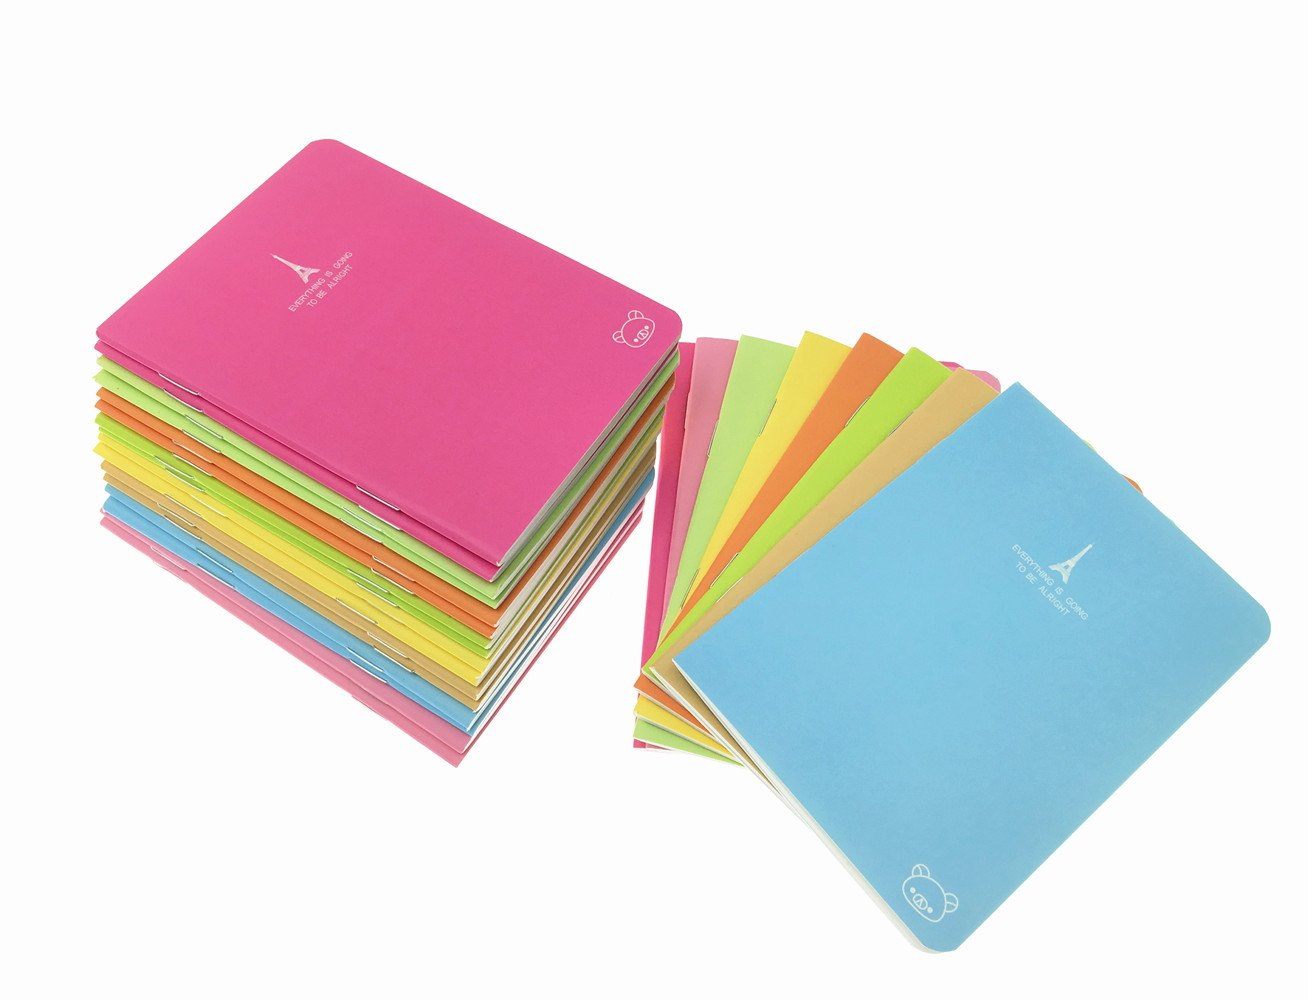 24pcs Candy Colors Portable Steno Memo Notebook MiniDaily Mini Diary NotePad(8 Colors) By Alimitopia